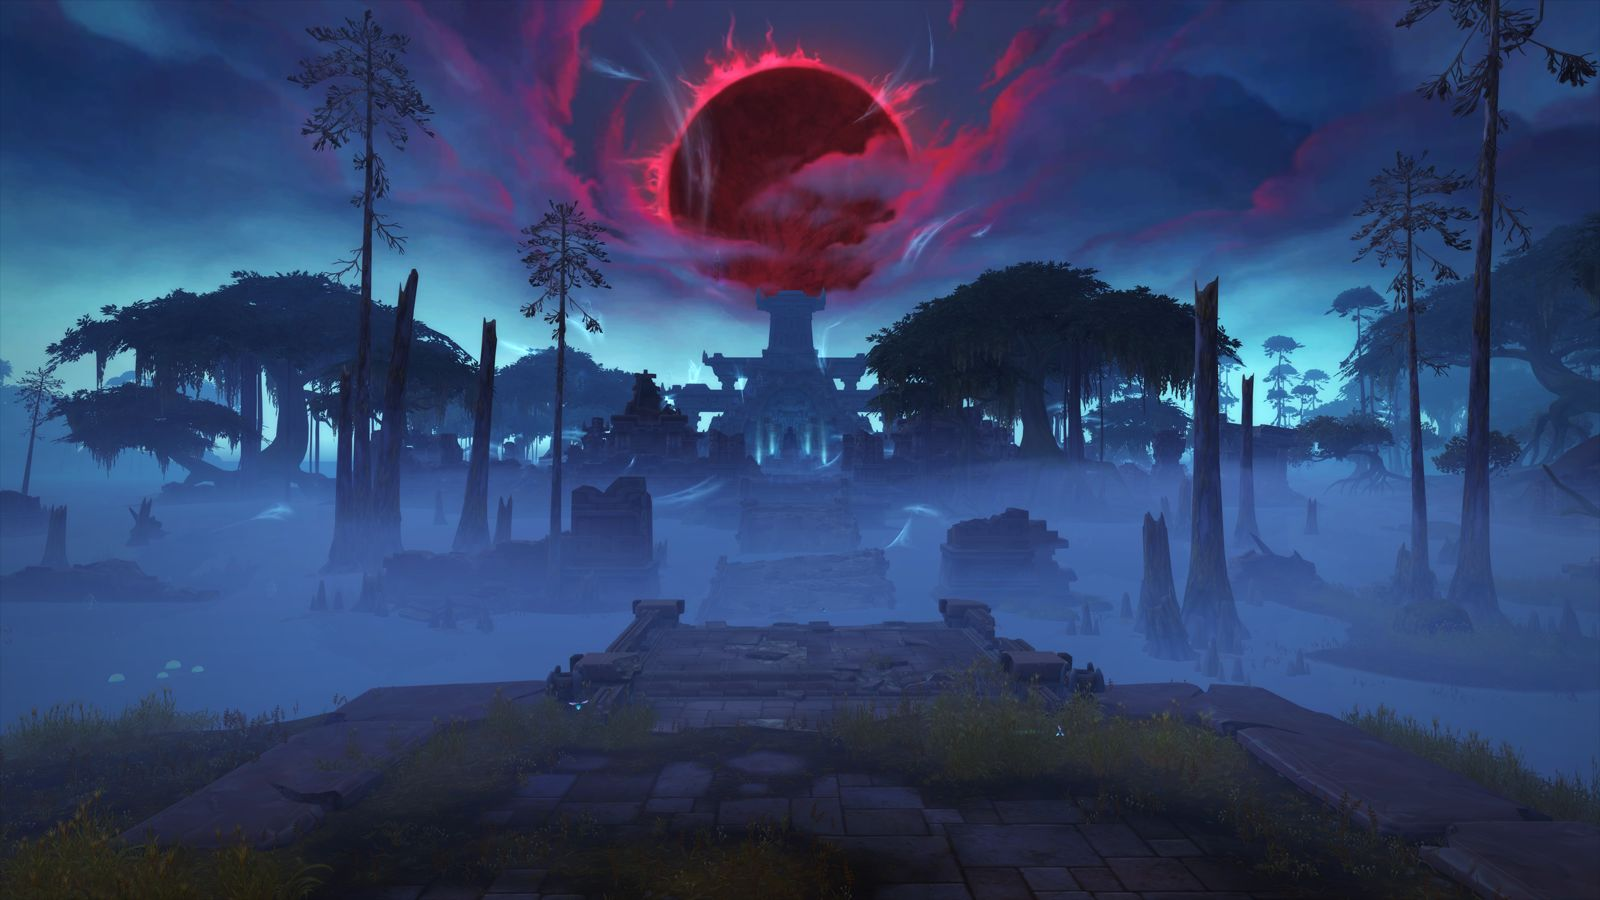 Bfa Hd Wallpaper: World Of Warcraft's Next Expansion Is Battle For Azeroth